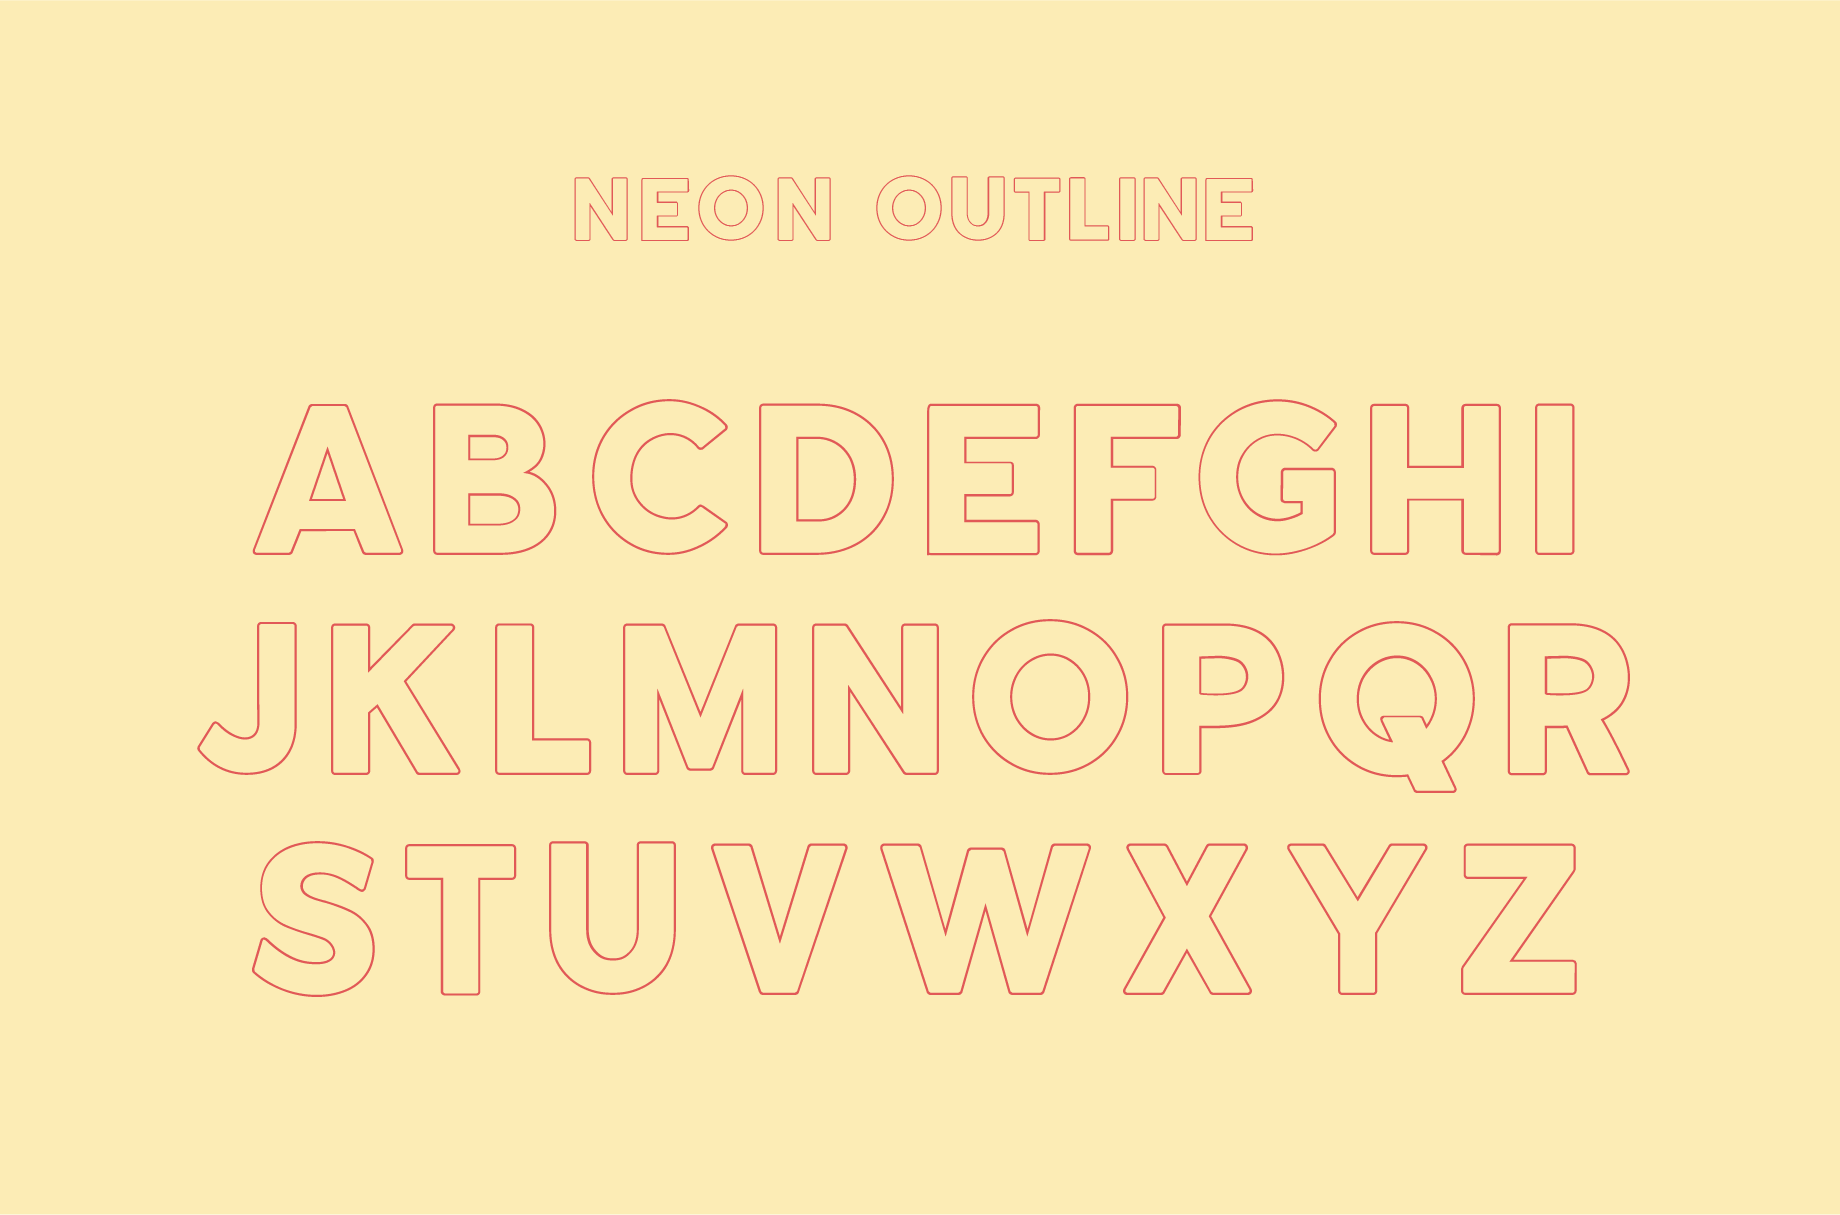 Neon | An Outline Font Bundle example image 6